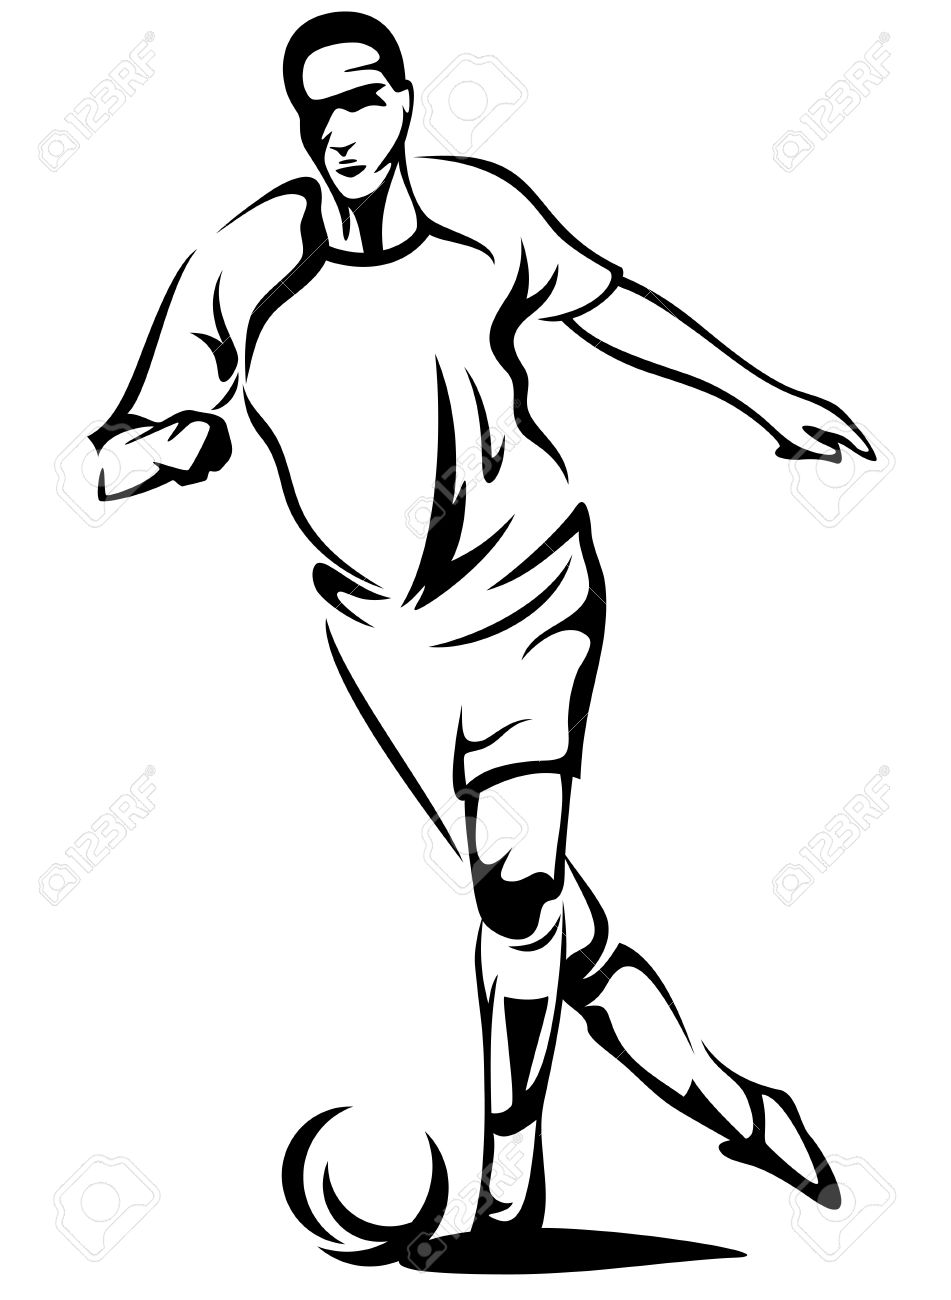 951x1300 Football Outline Clipart Black And White